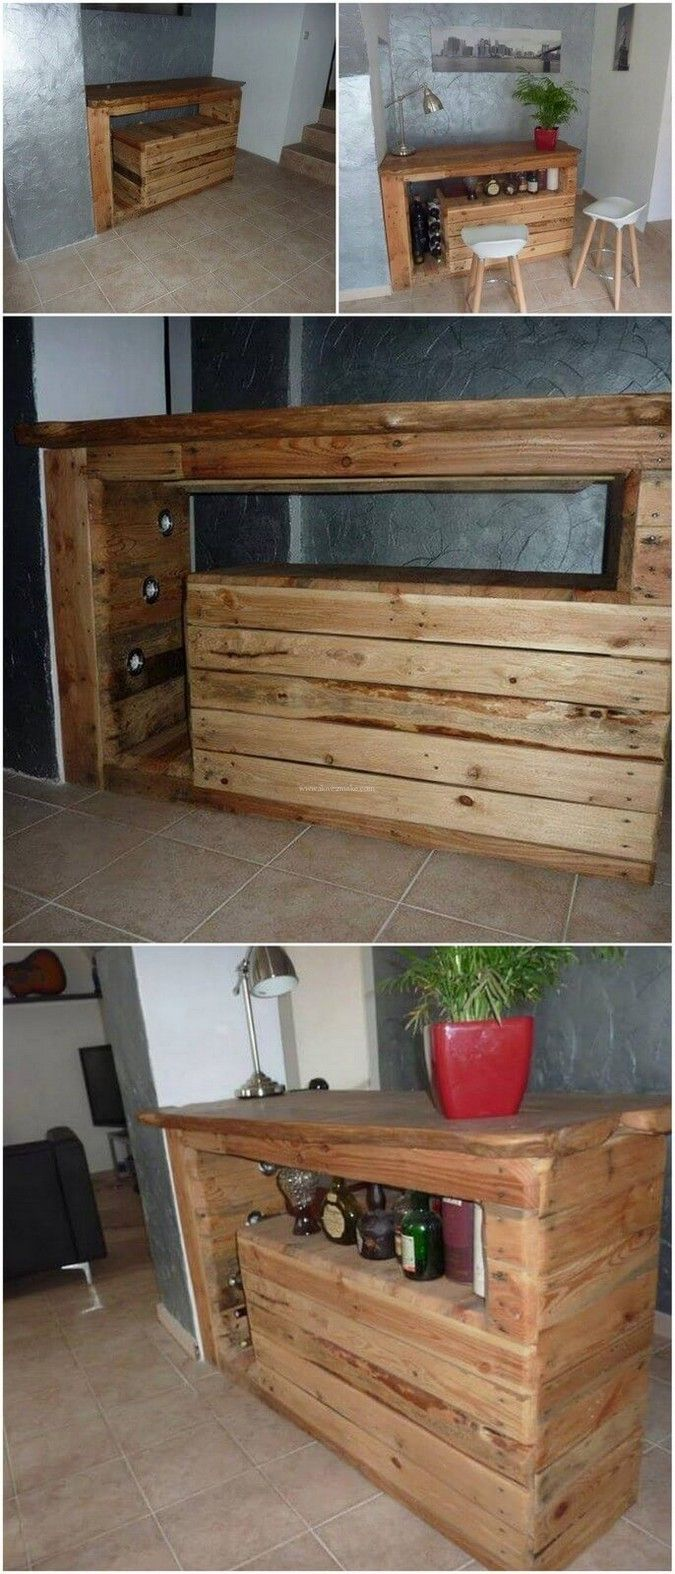 shipping pallet furniture ideas. 100+DIY PALLET IDEAS THAT YOU CAN MAKE THIS CHRISTMAS Shipping Pallet Furniture Ideas A